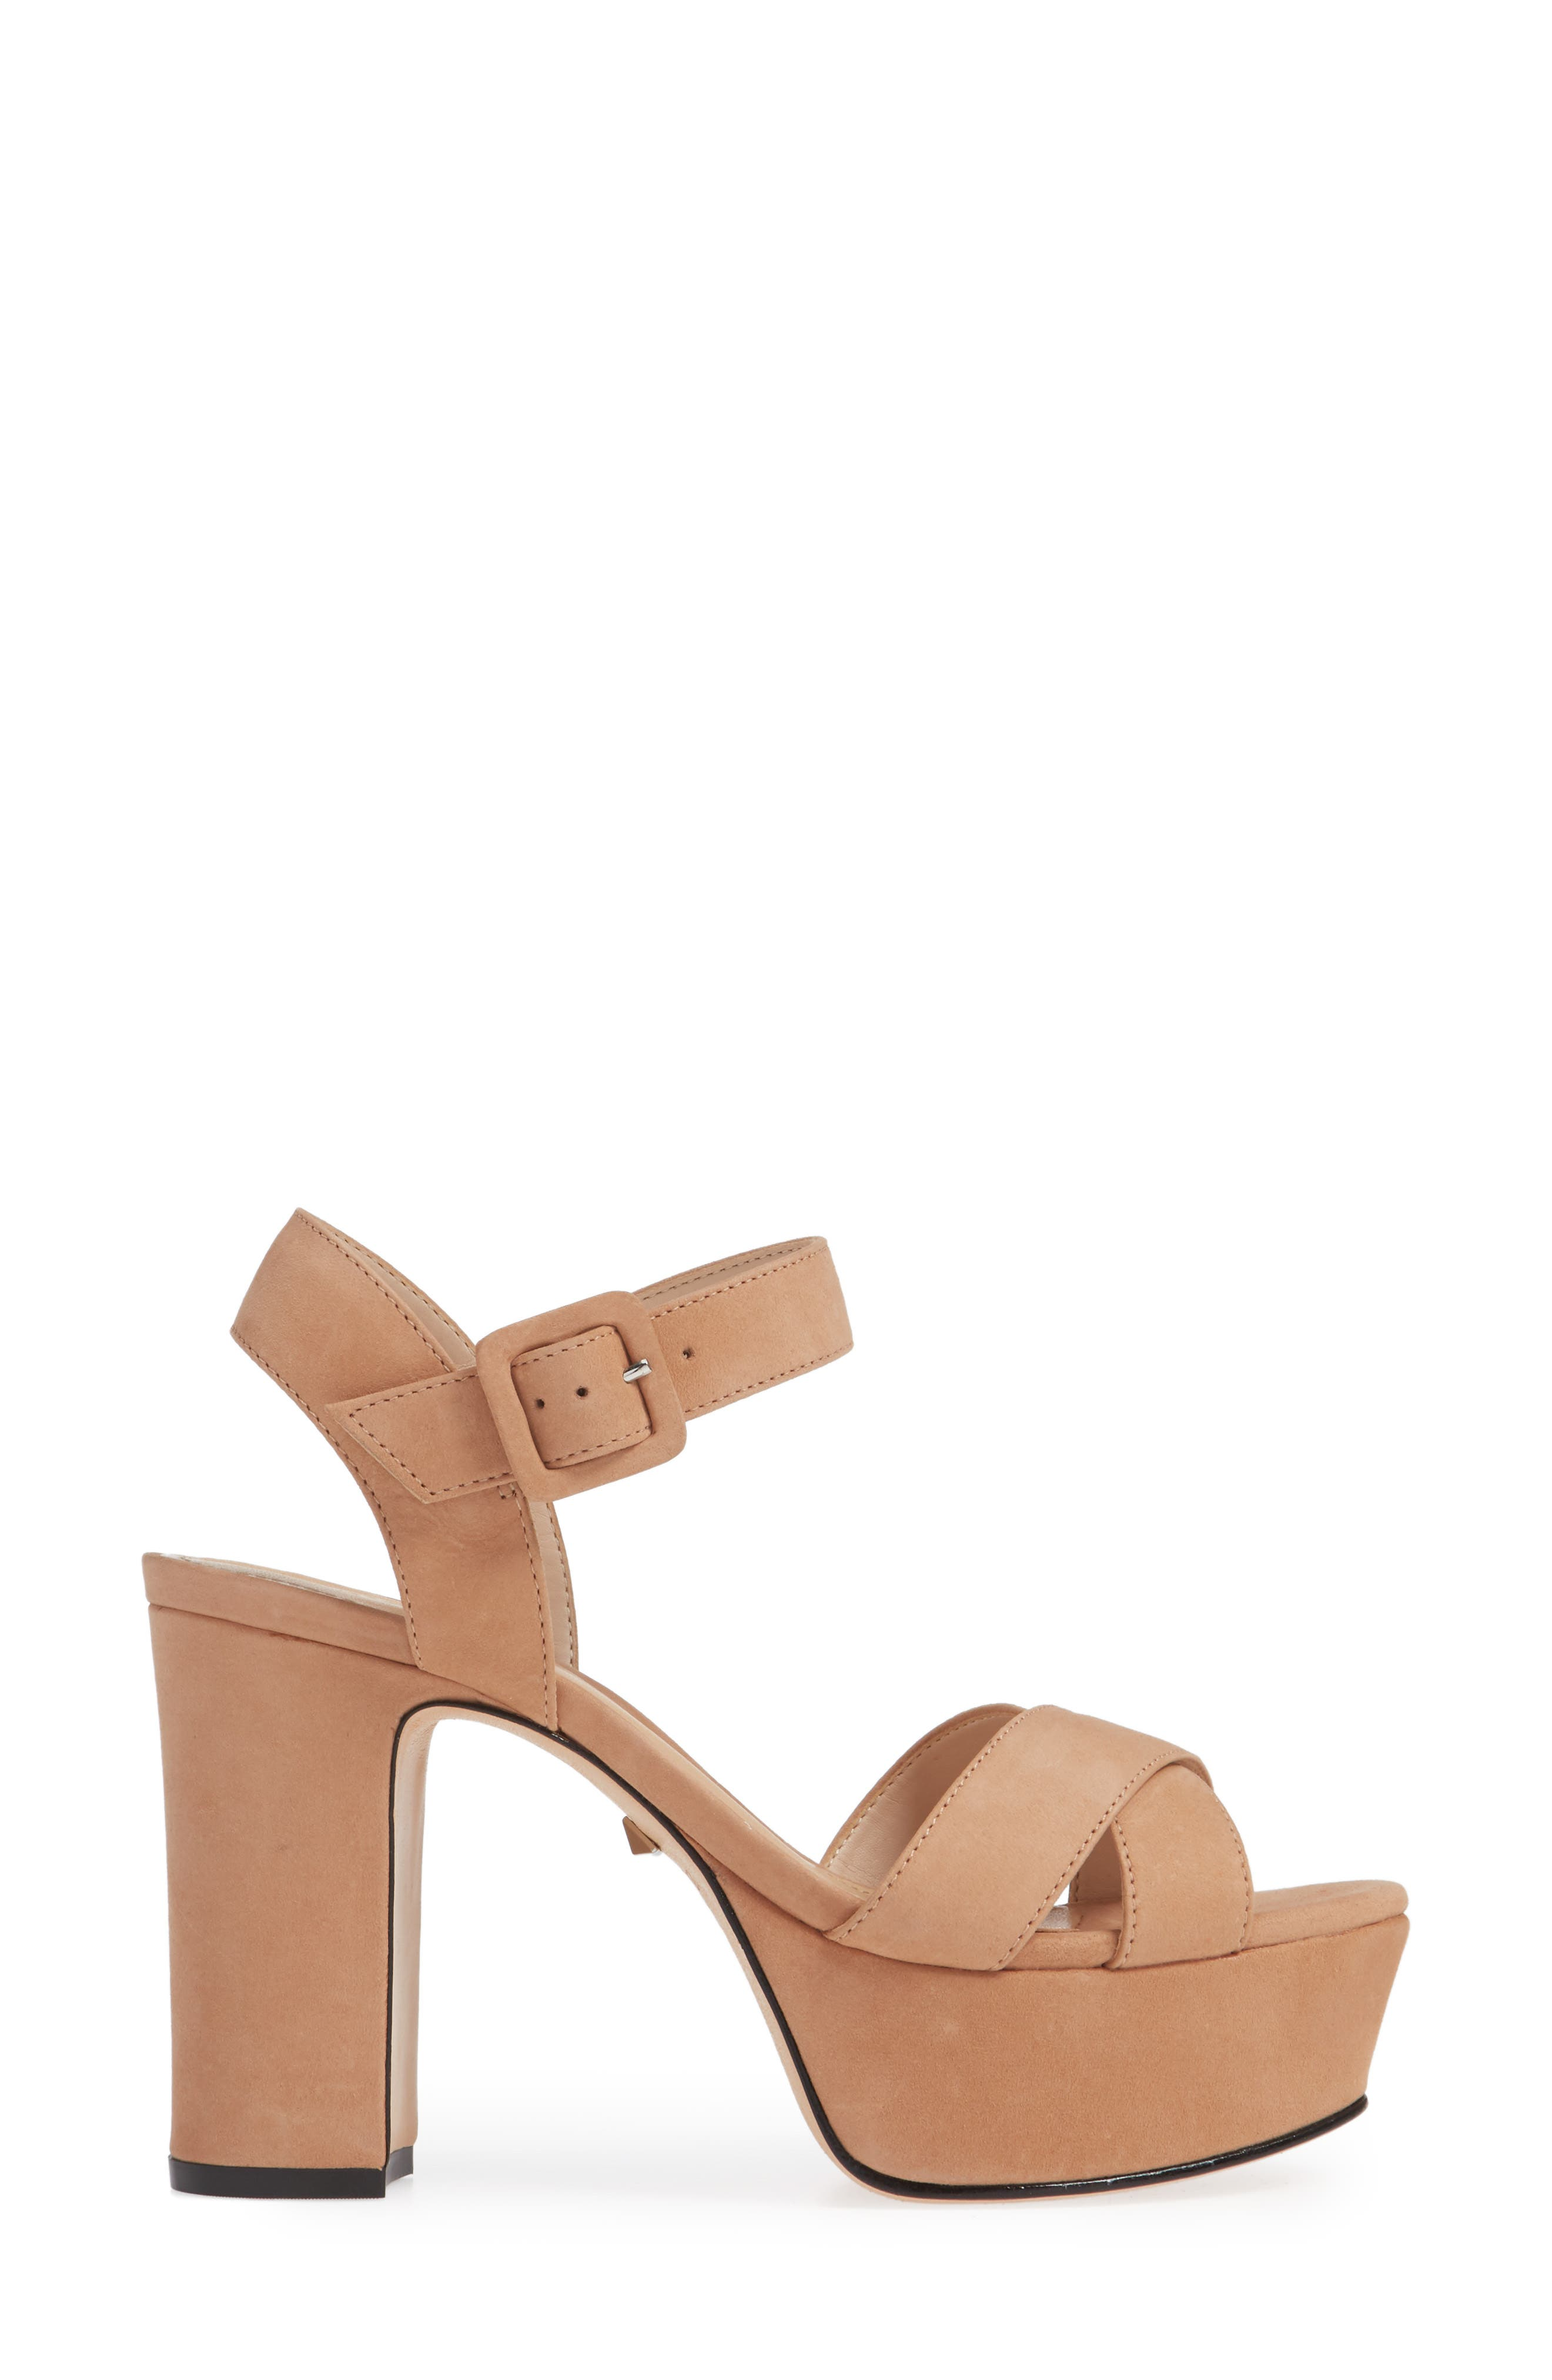 Tulia Sandal,                             Alternate thumbnail 3, color,                             HONEY BEIGE NUBUCK